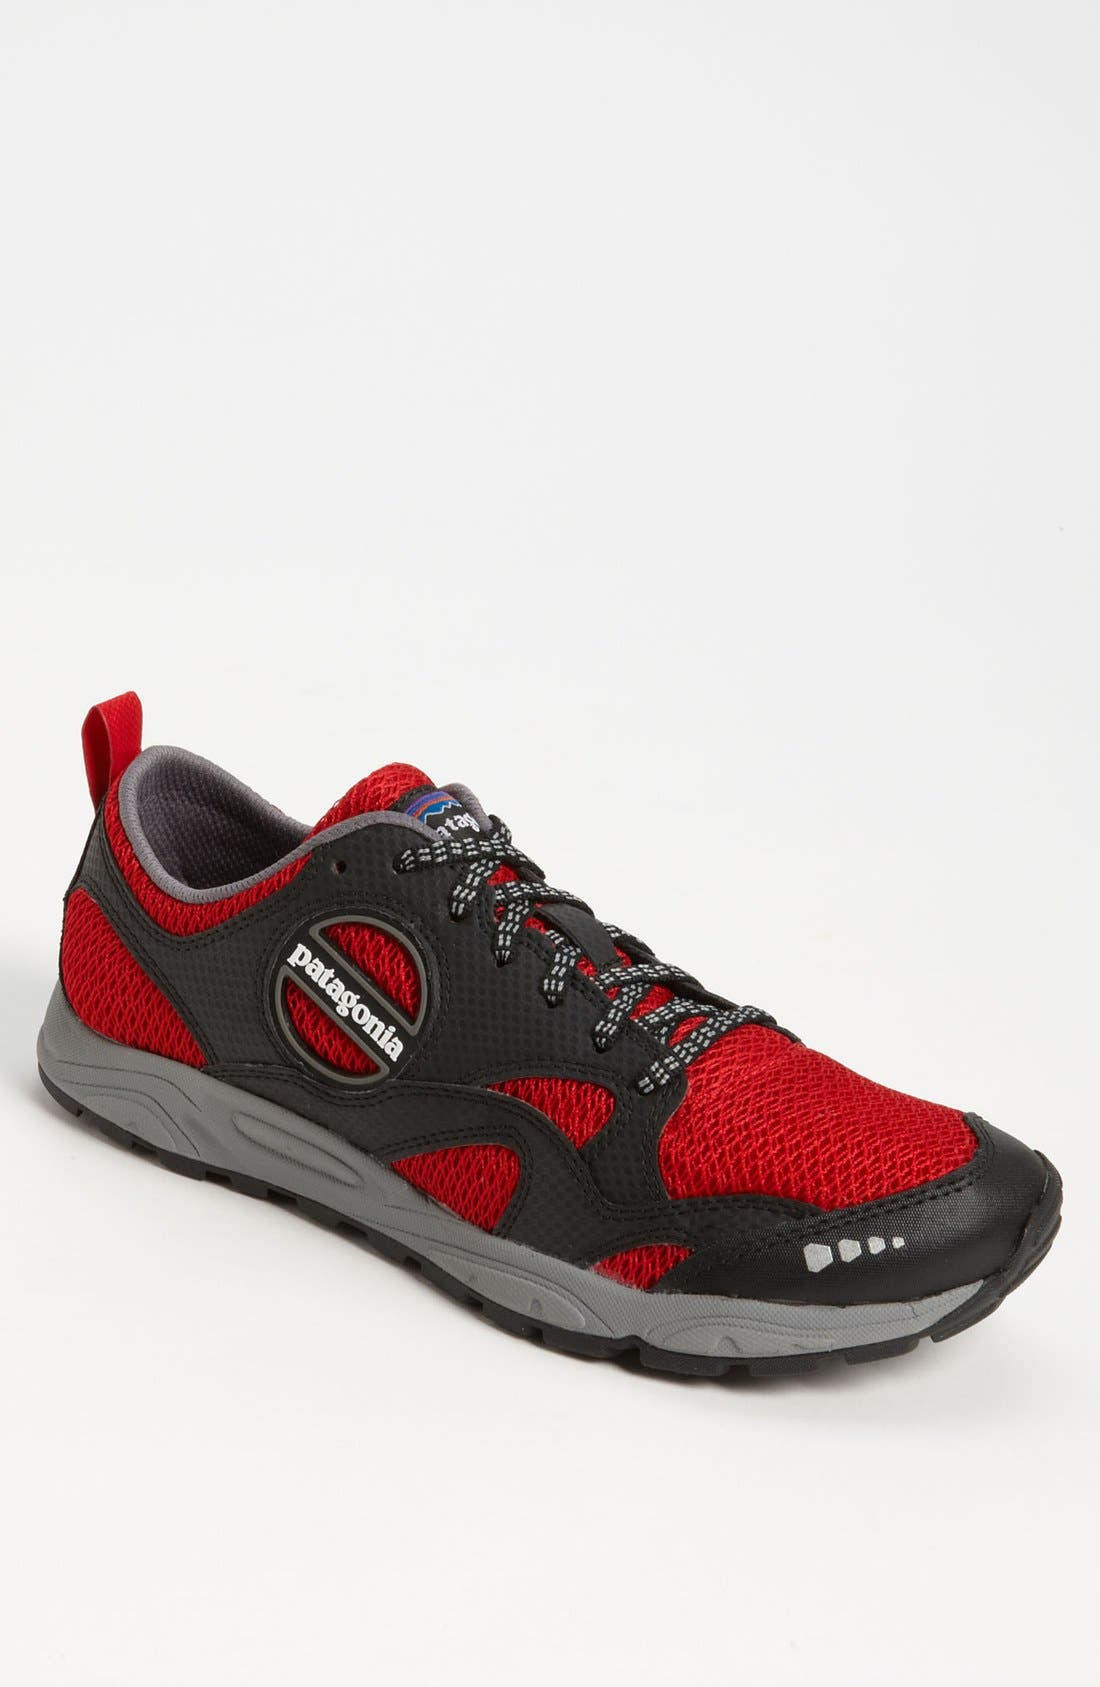 Alternate Image 1 Selected - Patagonia 'EVERmore' Trail Running Shoe (Men)